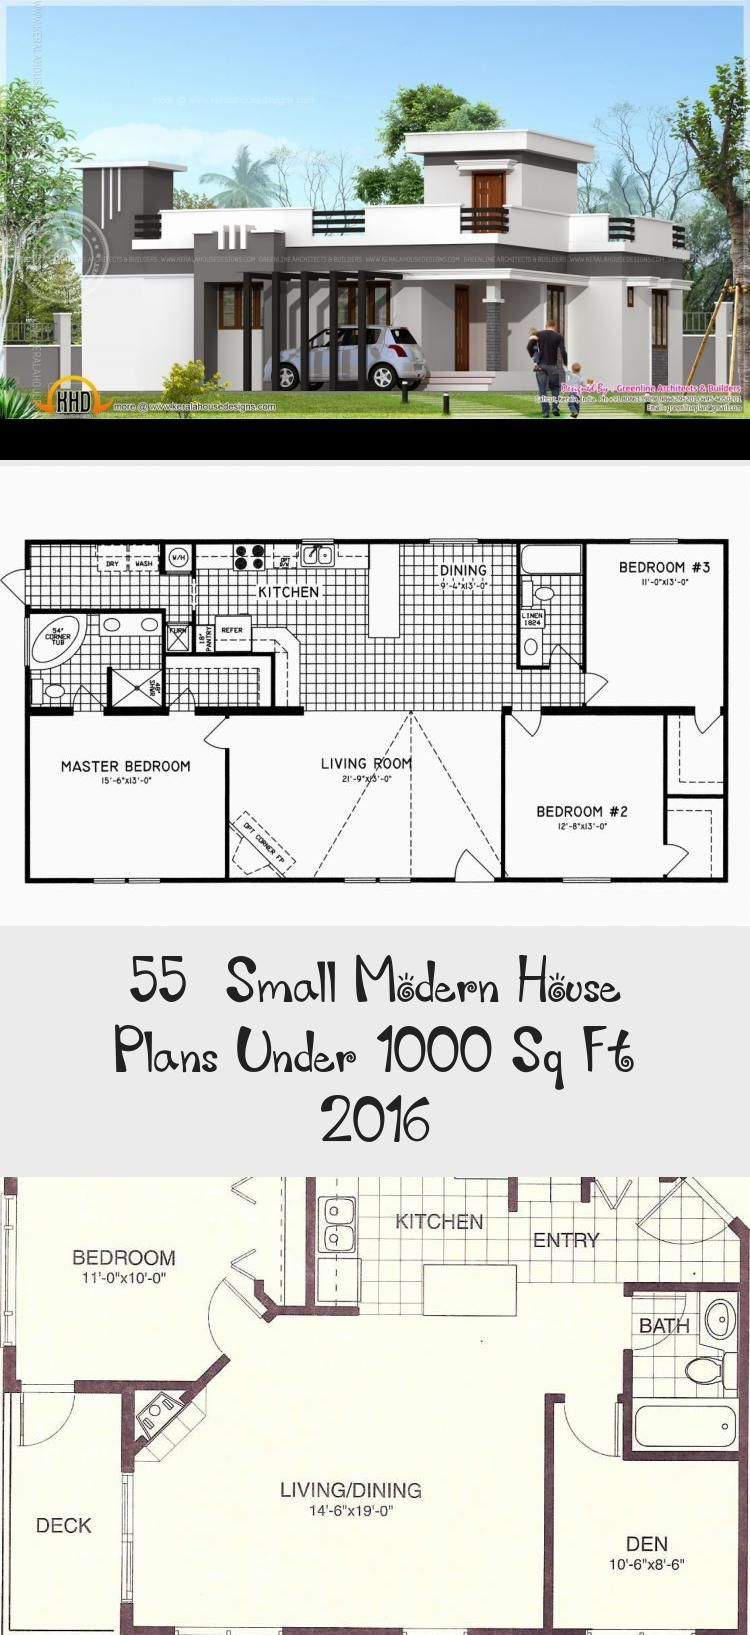 50 Small Modern House Plans Under 1000 Sq Ft 2019 # ...